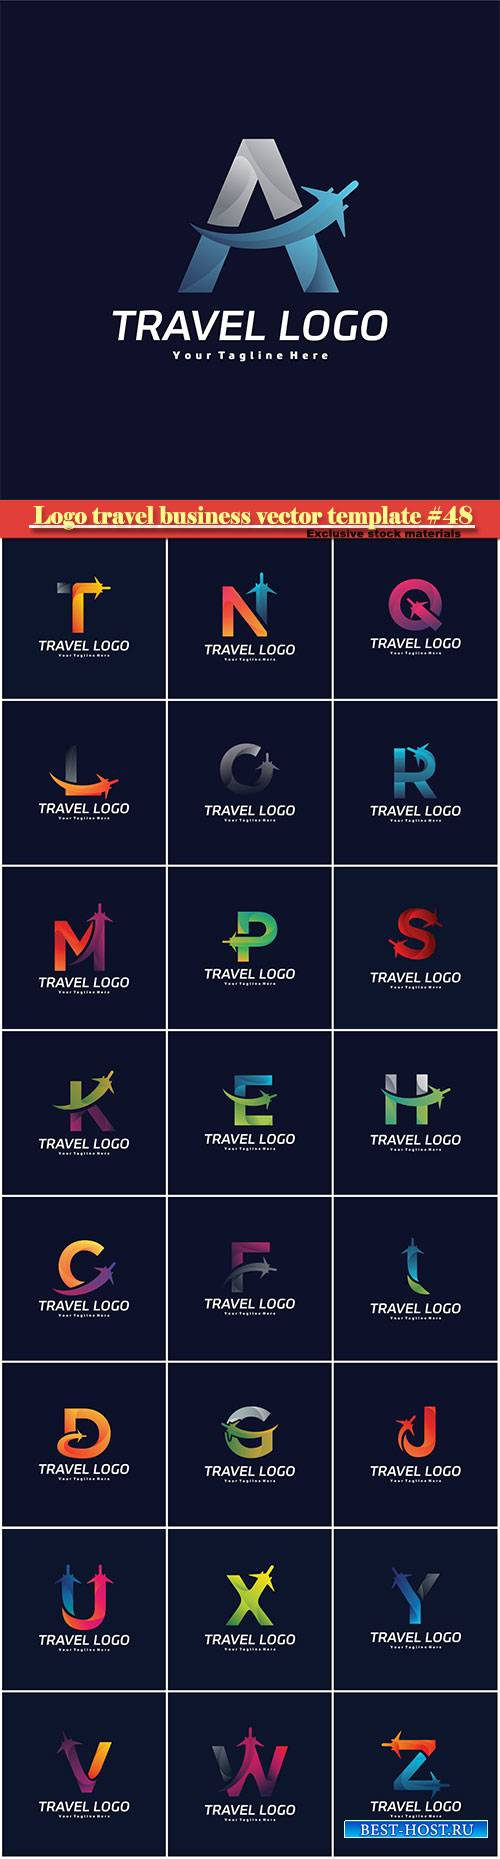 Logo travel business vector illustration template #48